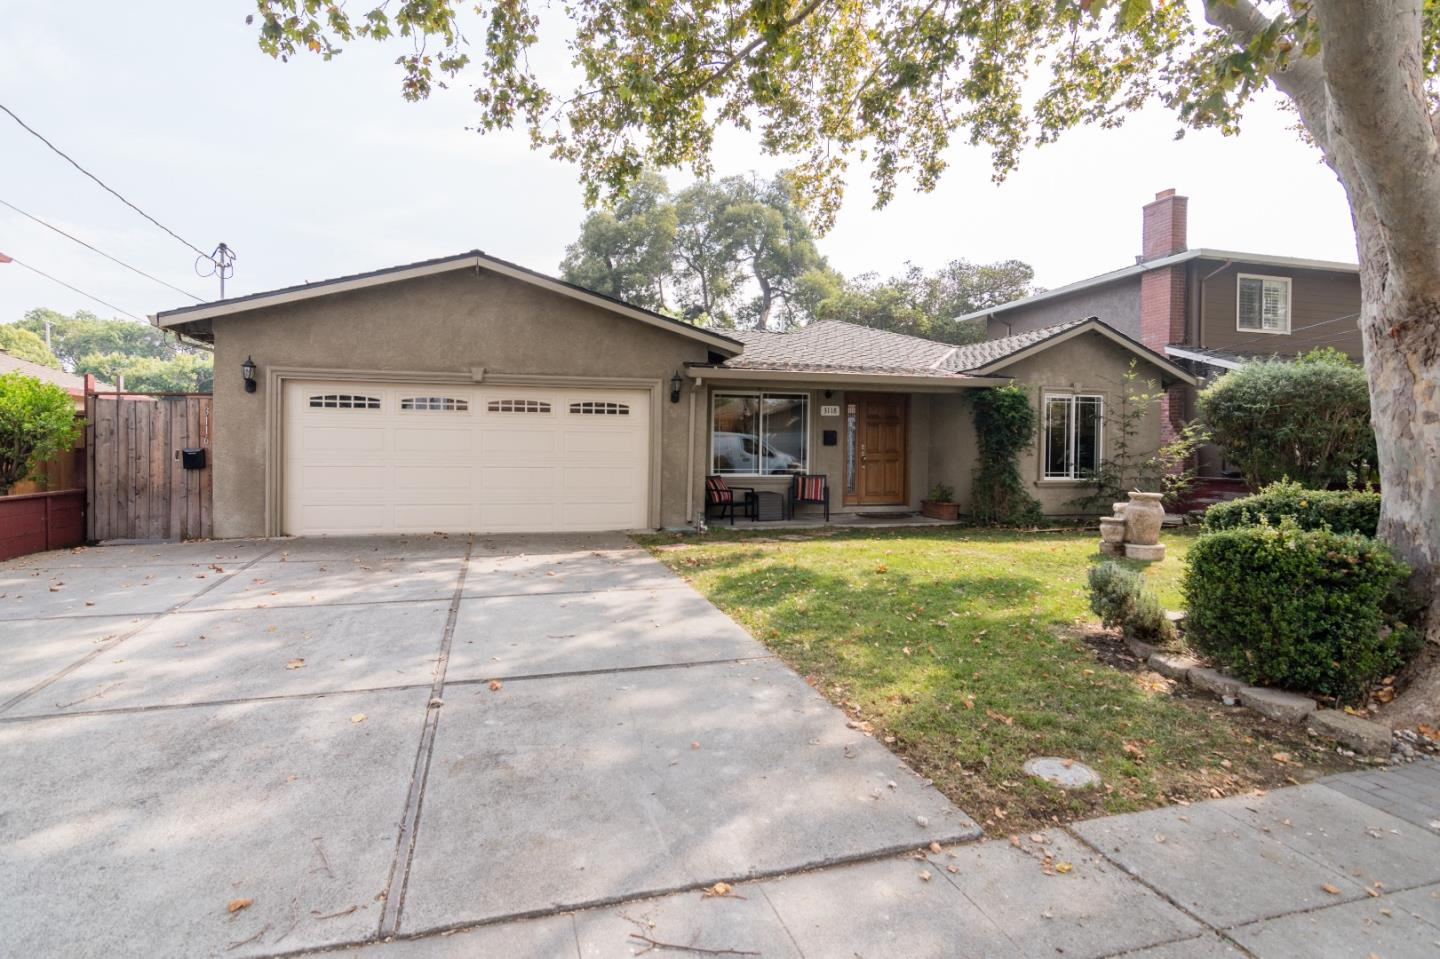 Single Family Home for Sale at 3118 Butte Street Santa Clara, California 95051 United States